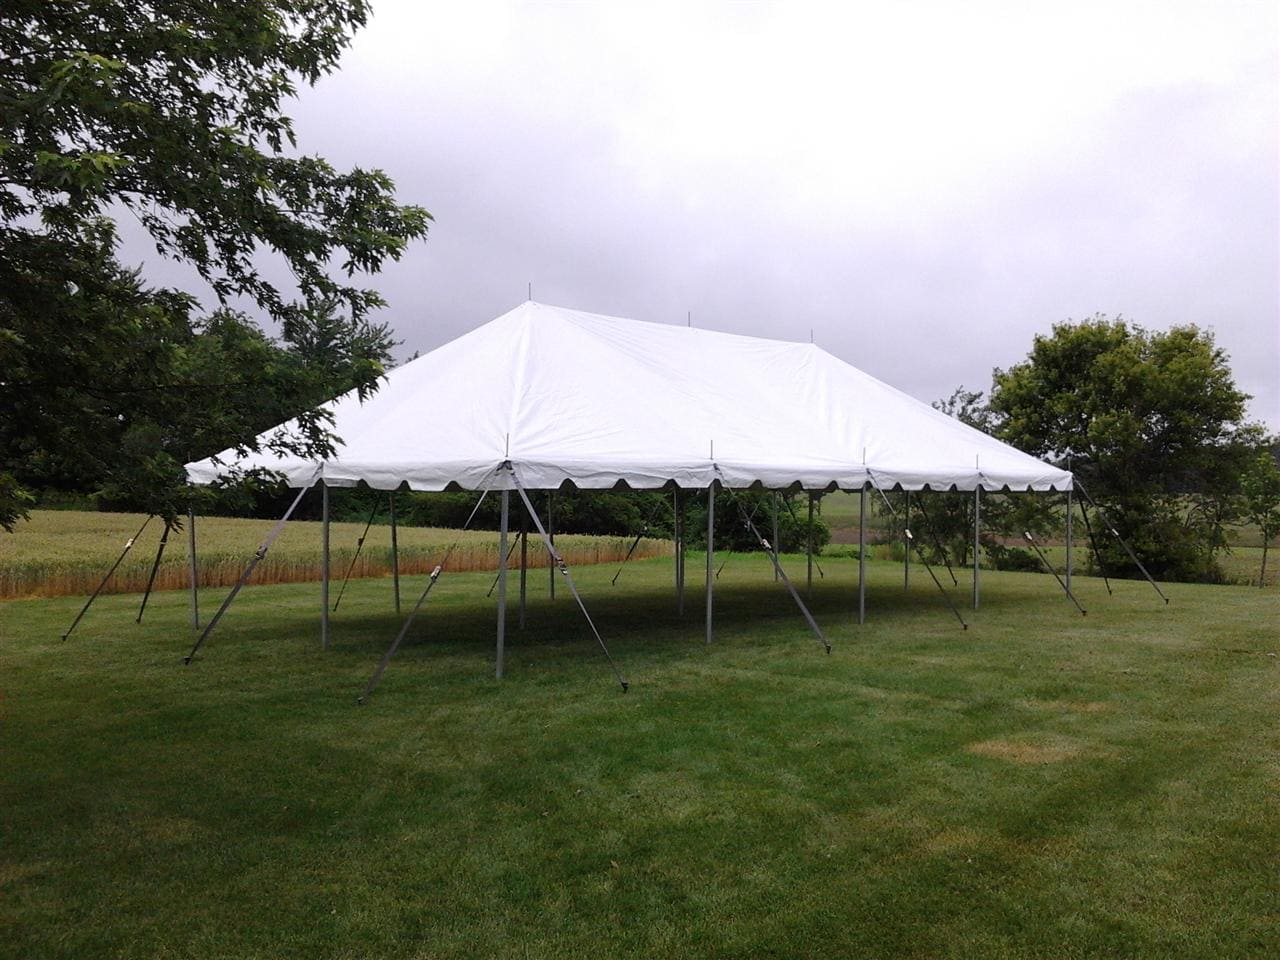 20 x 40 Tent Canopy & 20 x 40 Tent Canopy - Taylor Rental Party Plus